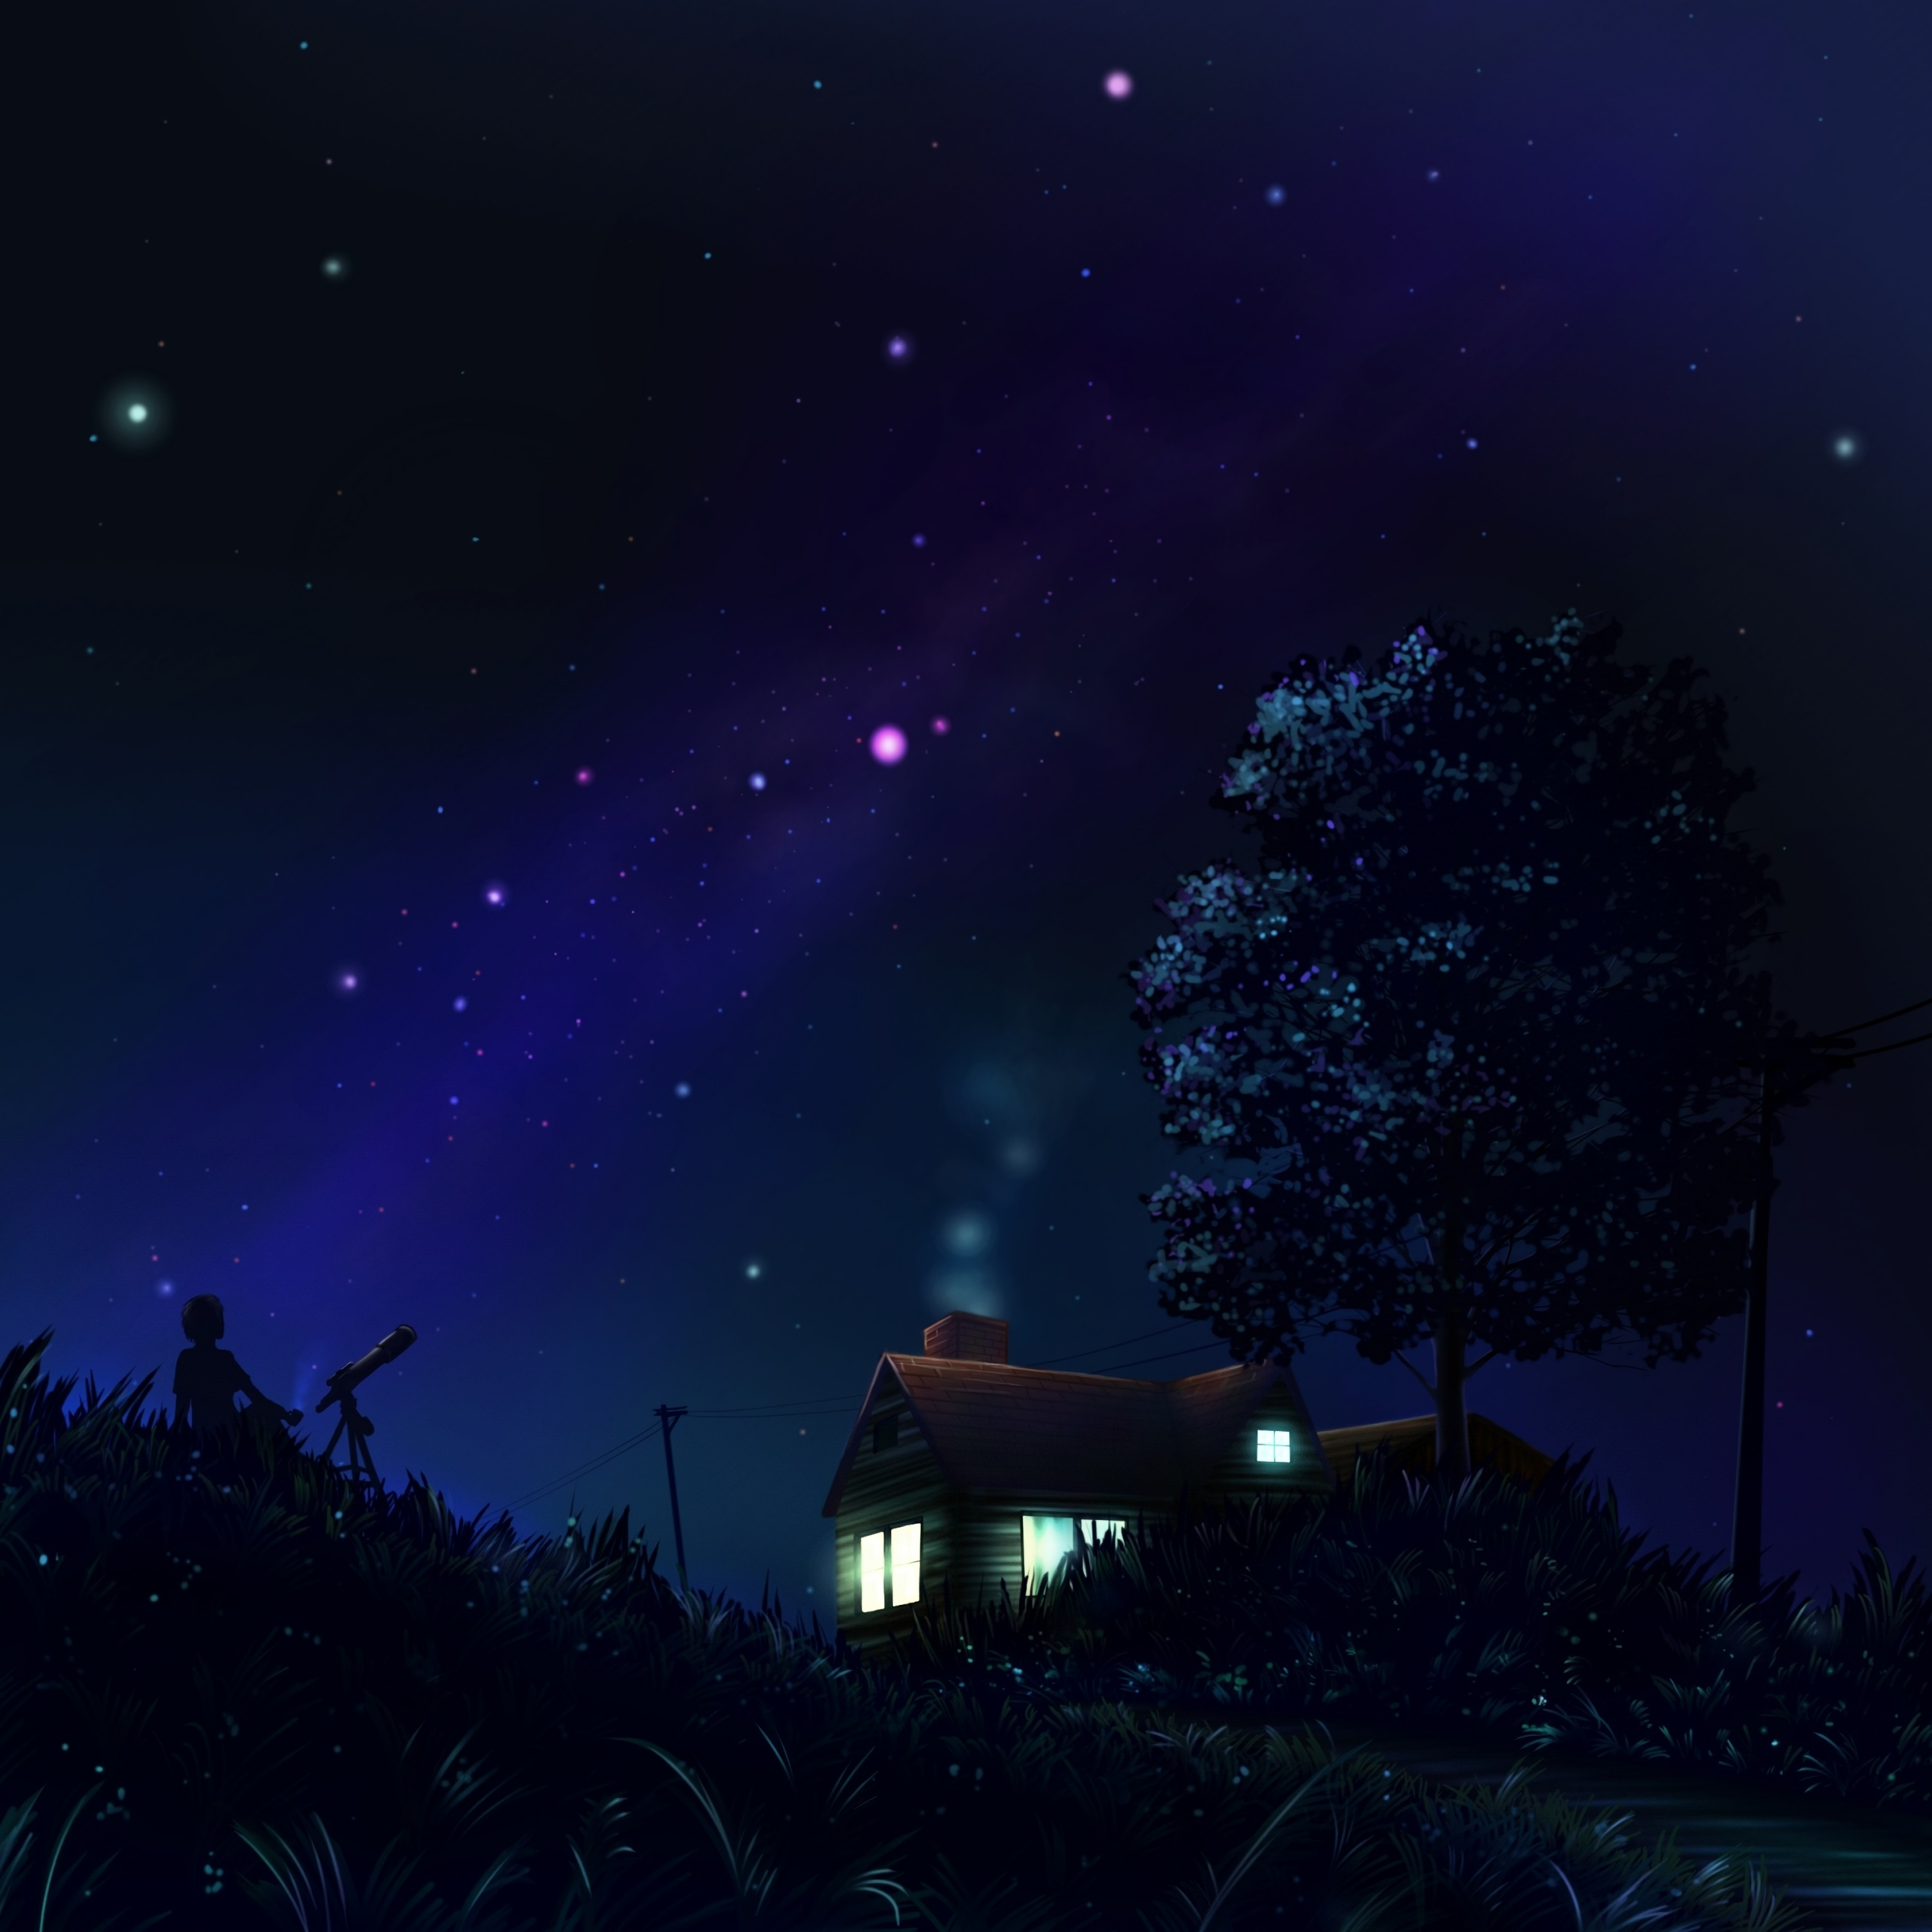 92330 download wallpaper Night, Art, Stars, Silhouette, House screensavers and pictures for free